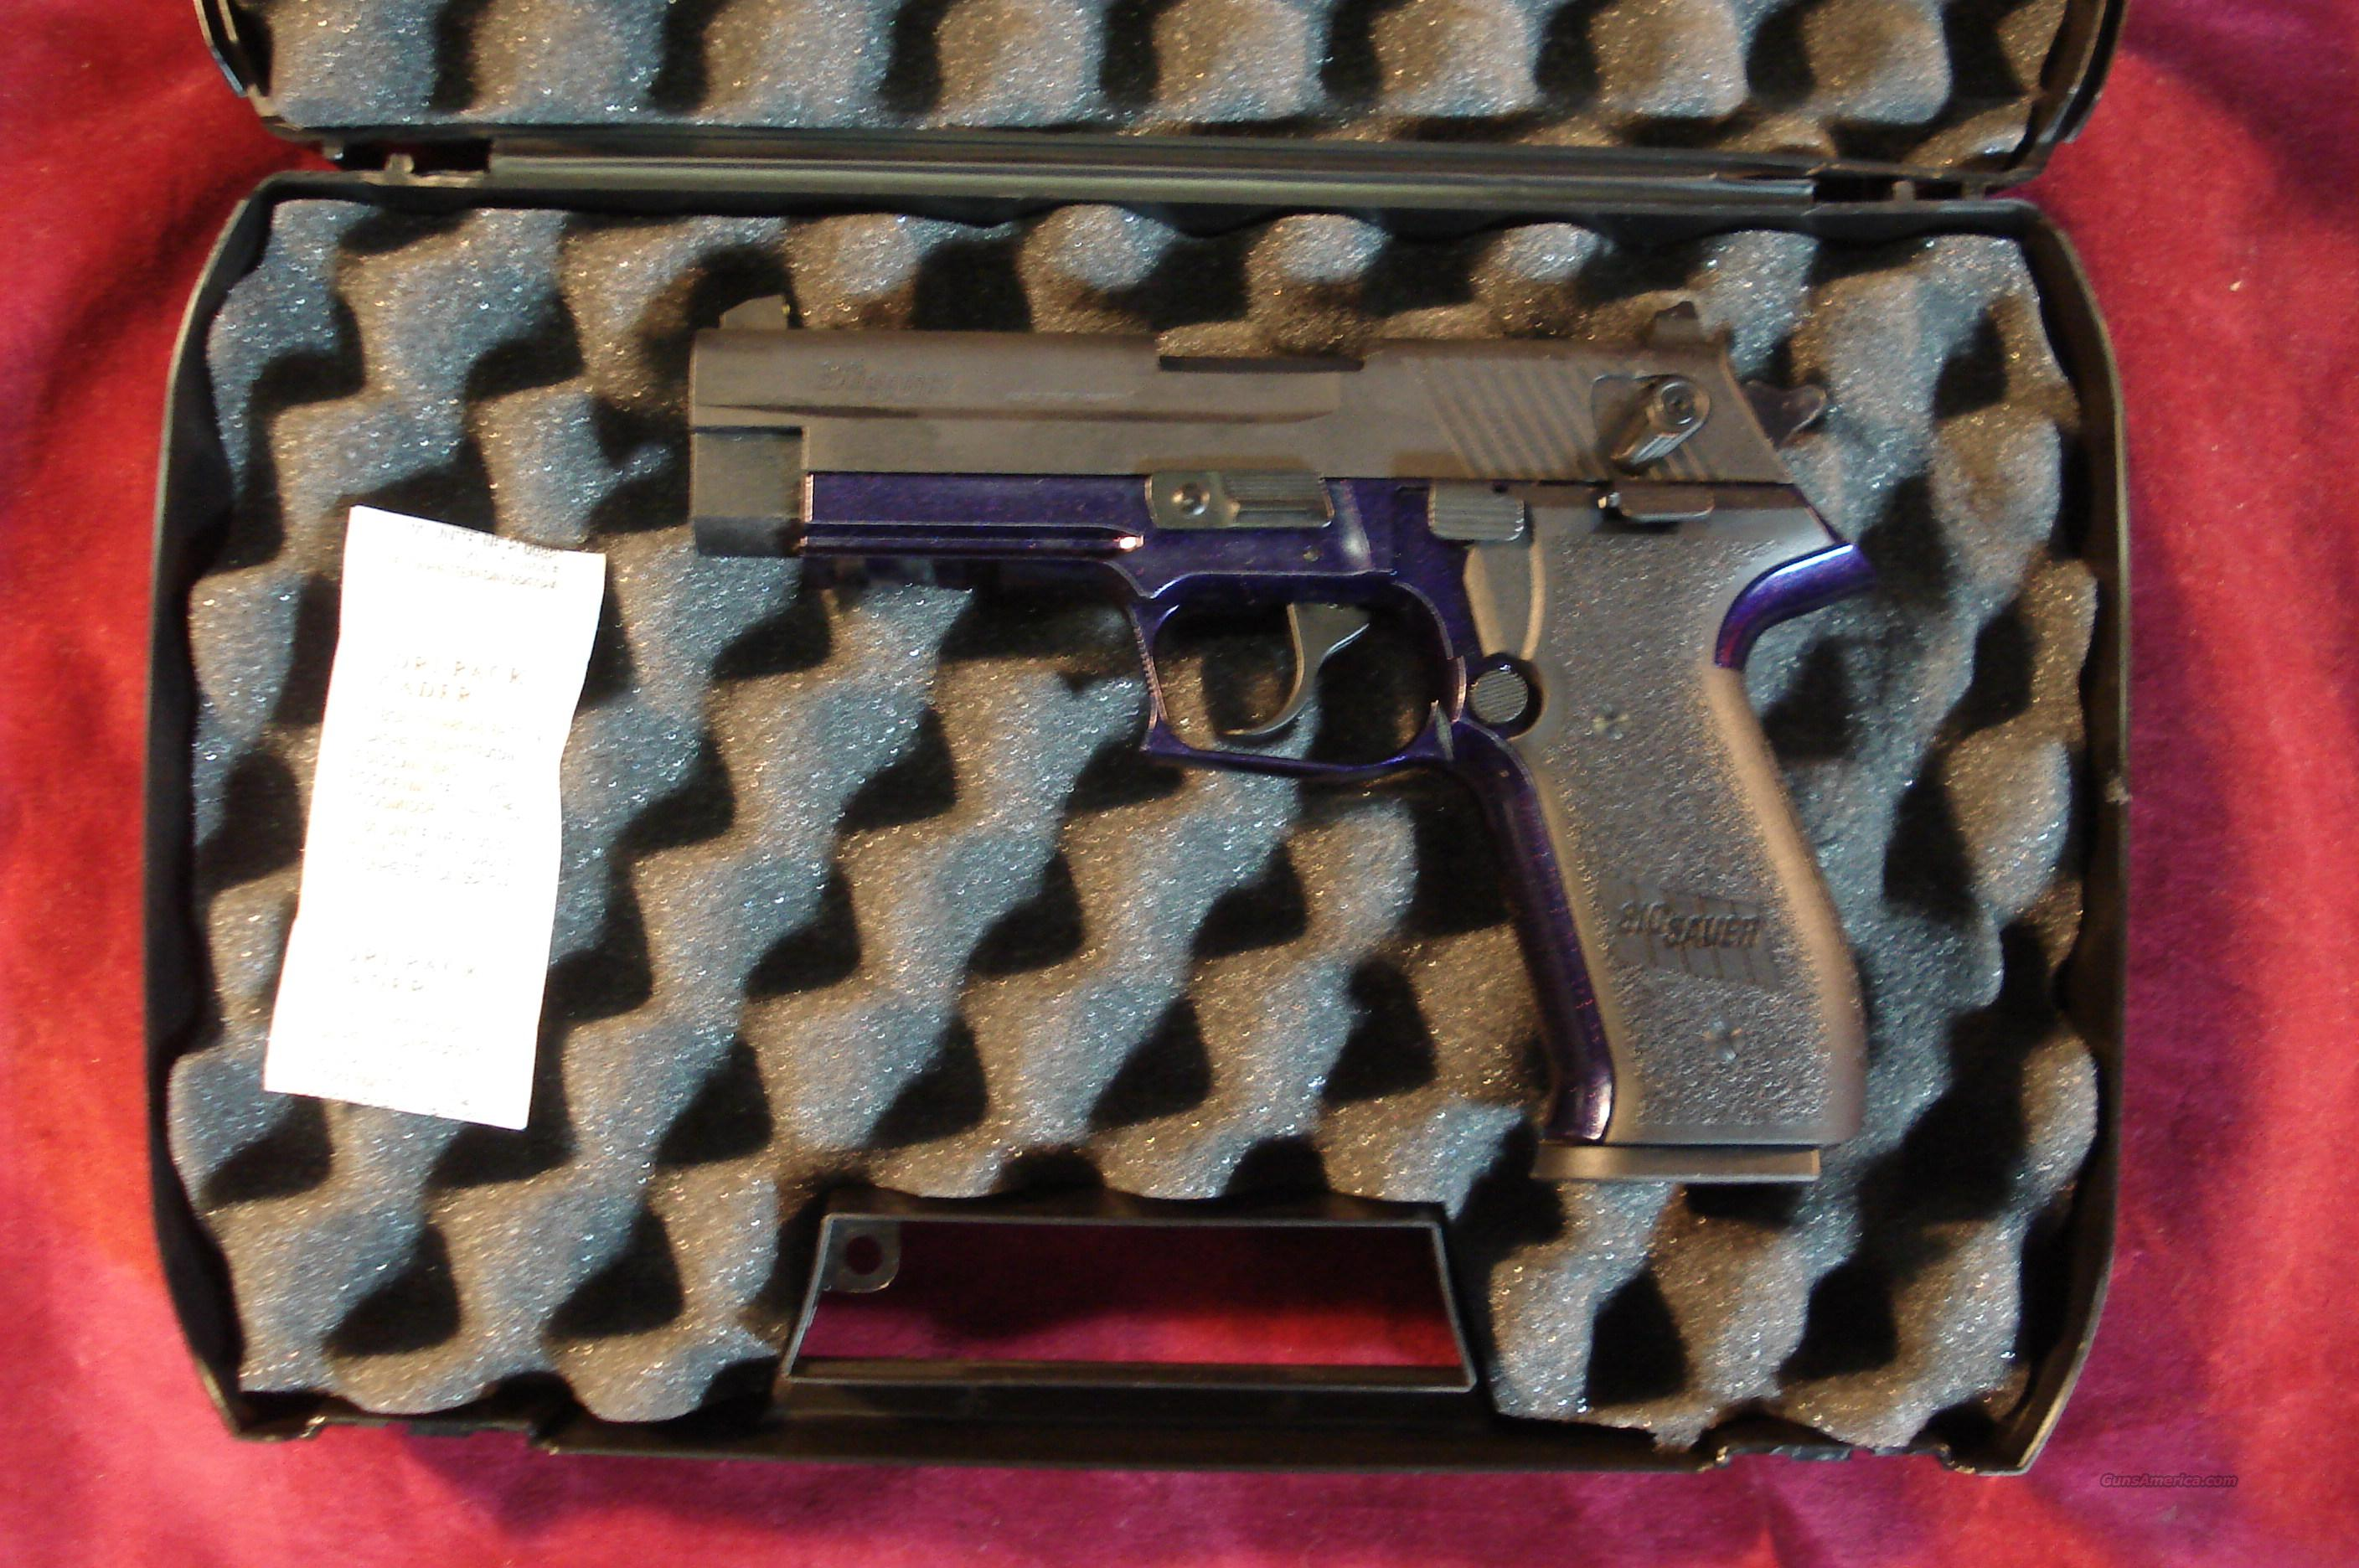 SIG SAUER MOSQUITO 22LR CAL PURPLE/ BLACK TWO TONE NEW  Guns > Pistols > Sig - Sauer/Sigarms Pistols > Mosquito